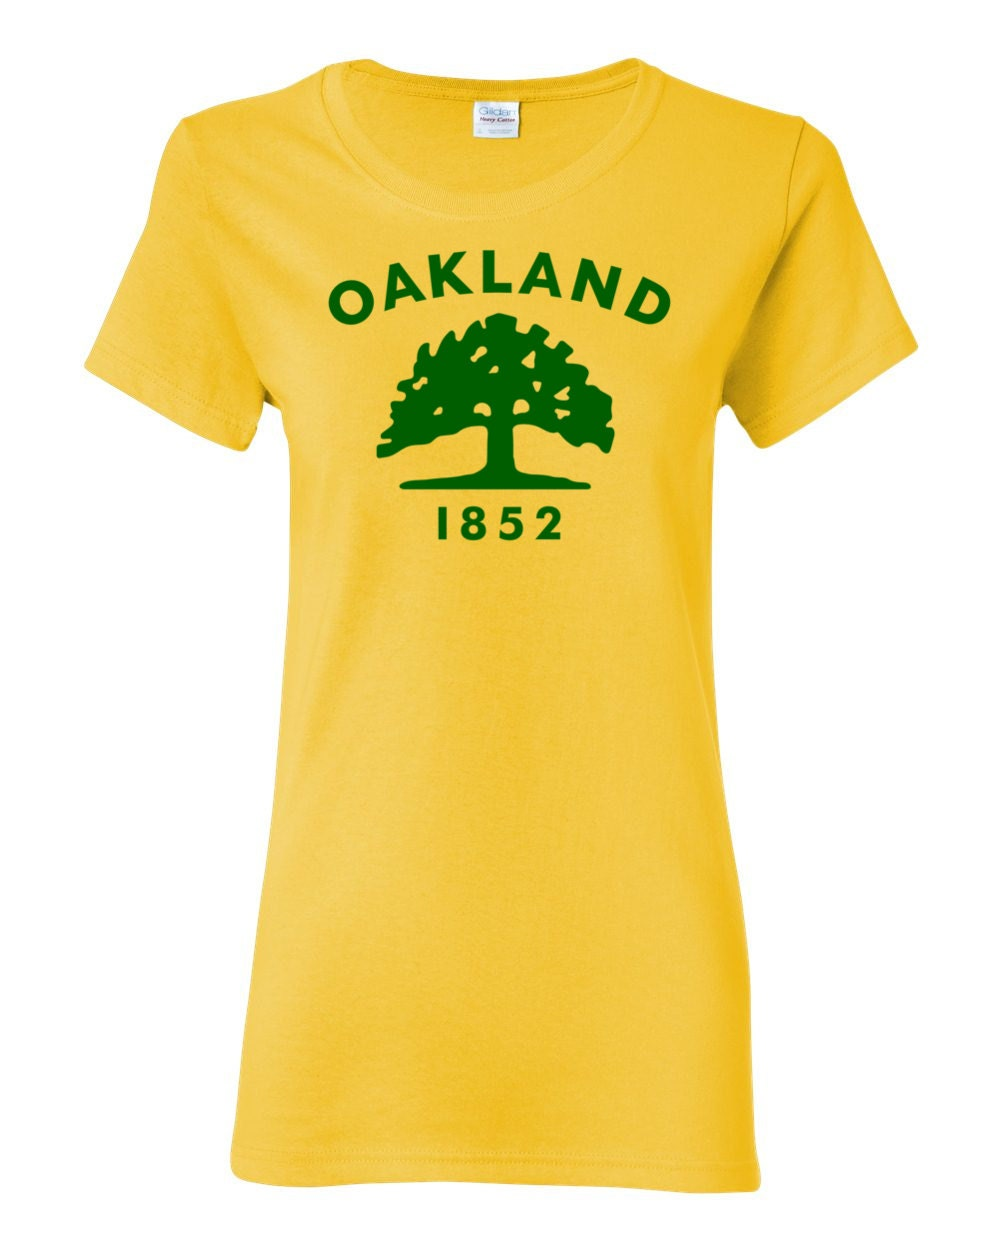 Oakland T-shirt - Oakland California City Flag Womens T-shirt